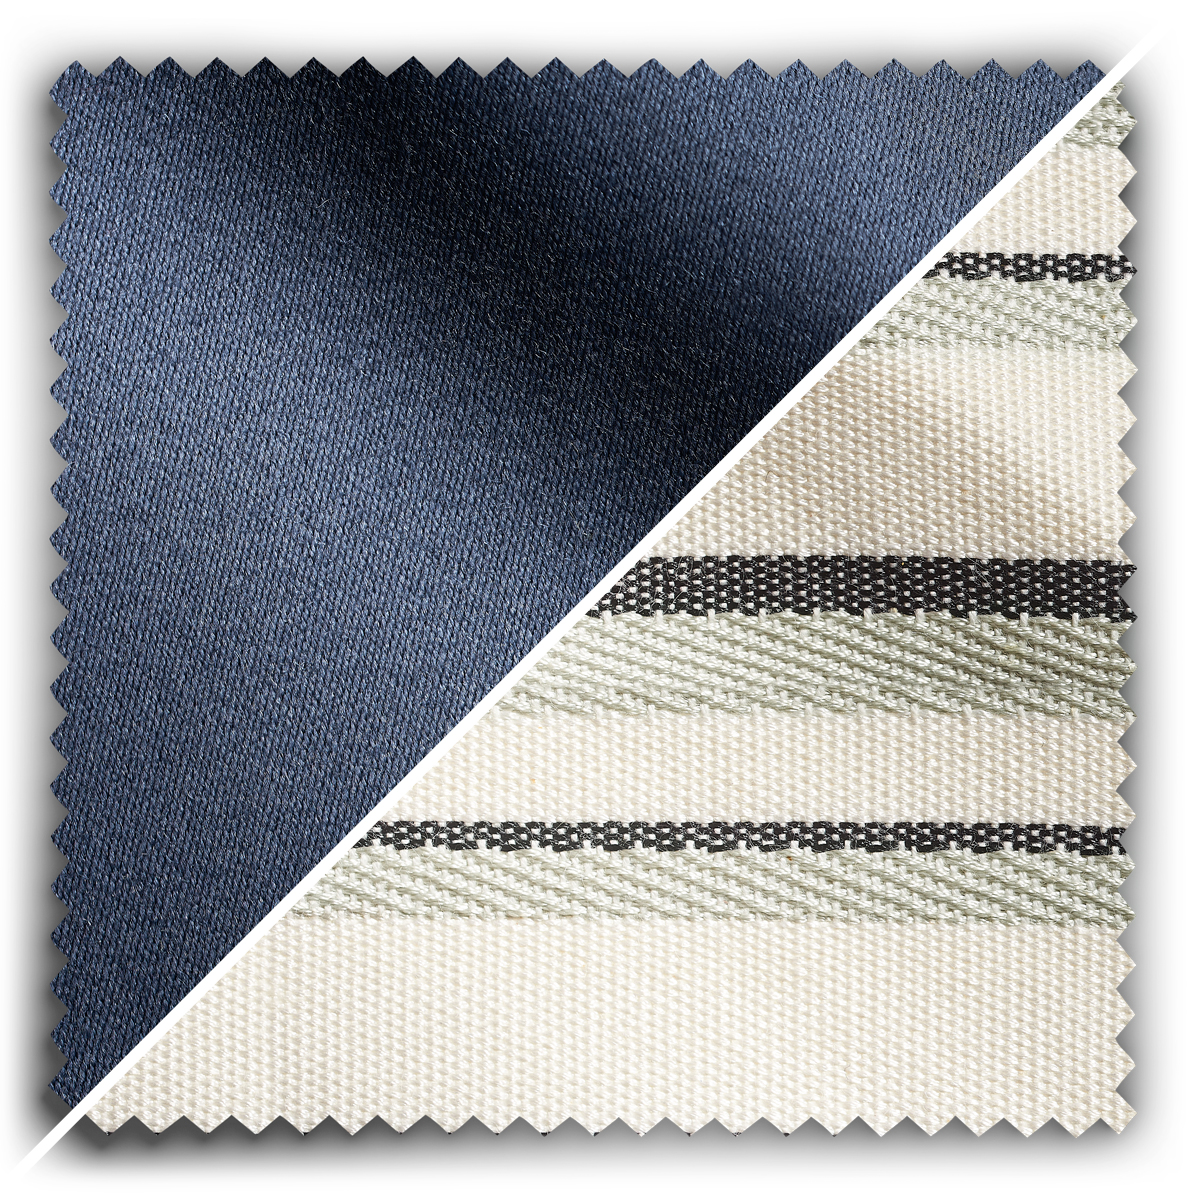 Image of Studio Stripes French Navy Studio Wool fabric